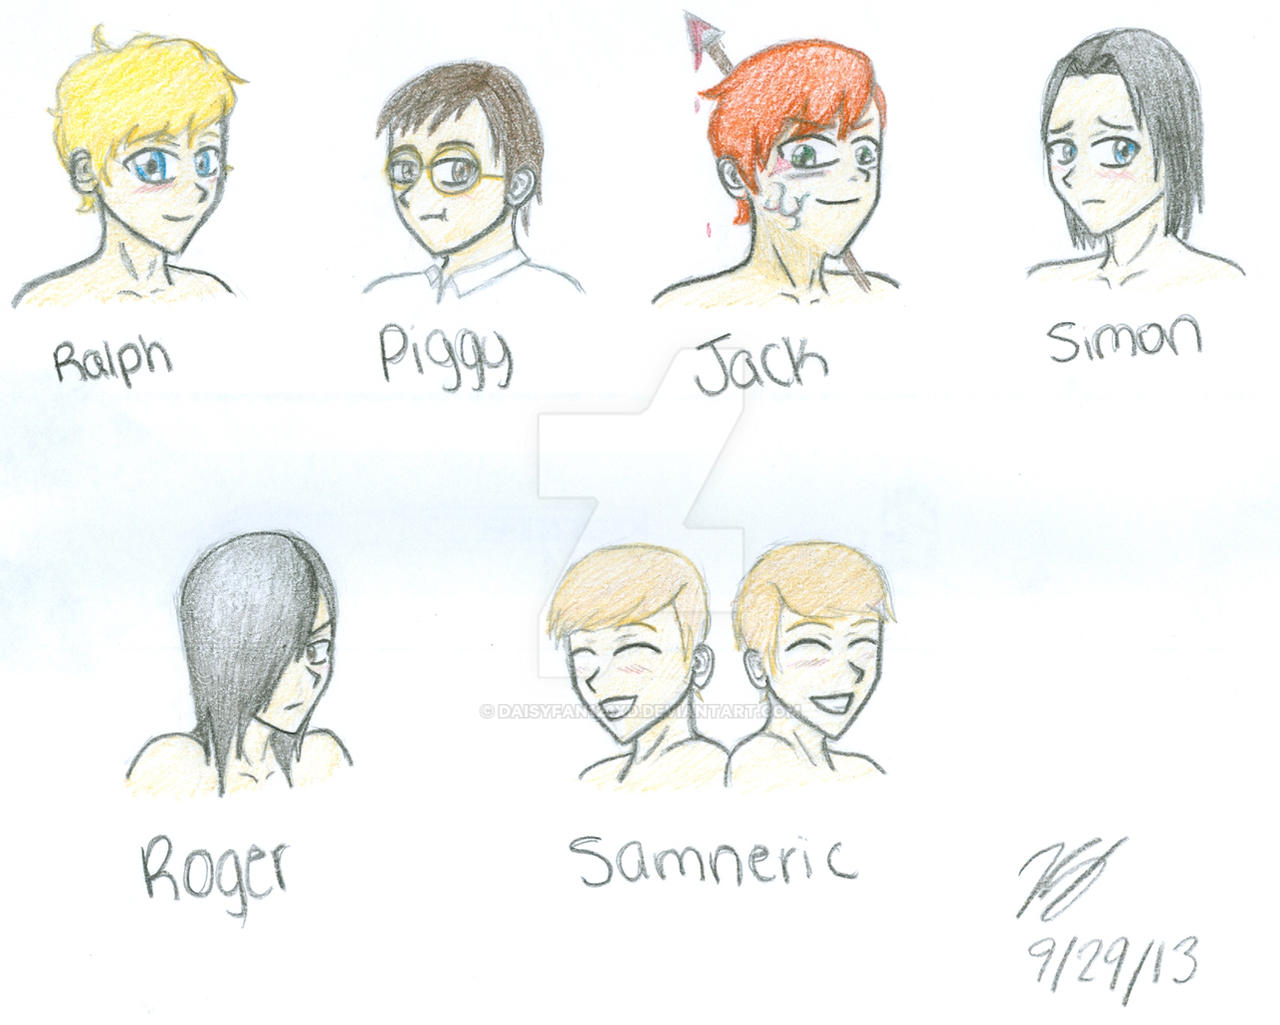 lord of the flies characters by daisyfanxd on lord of the flies characters by daisyfan123xd